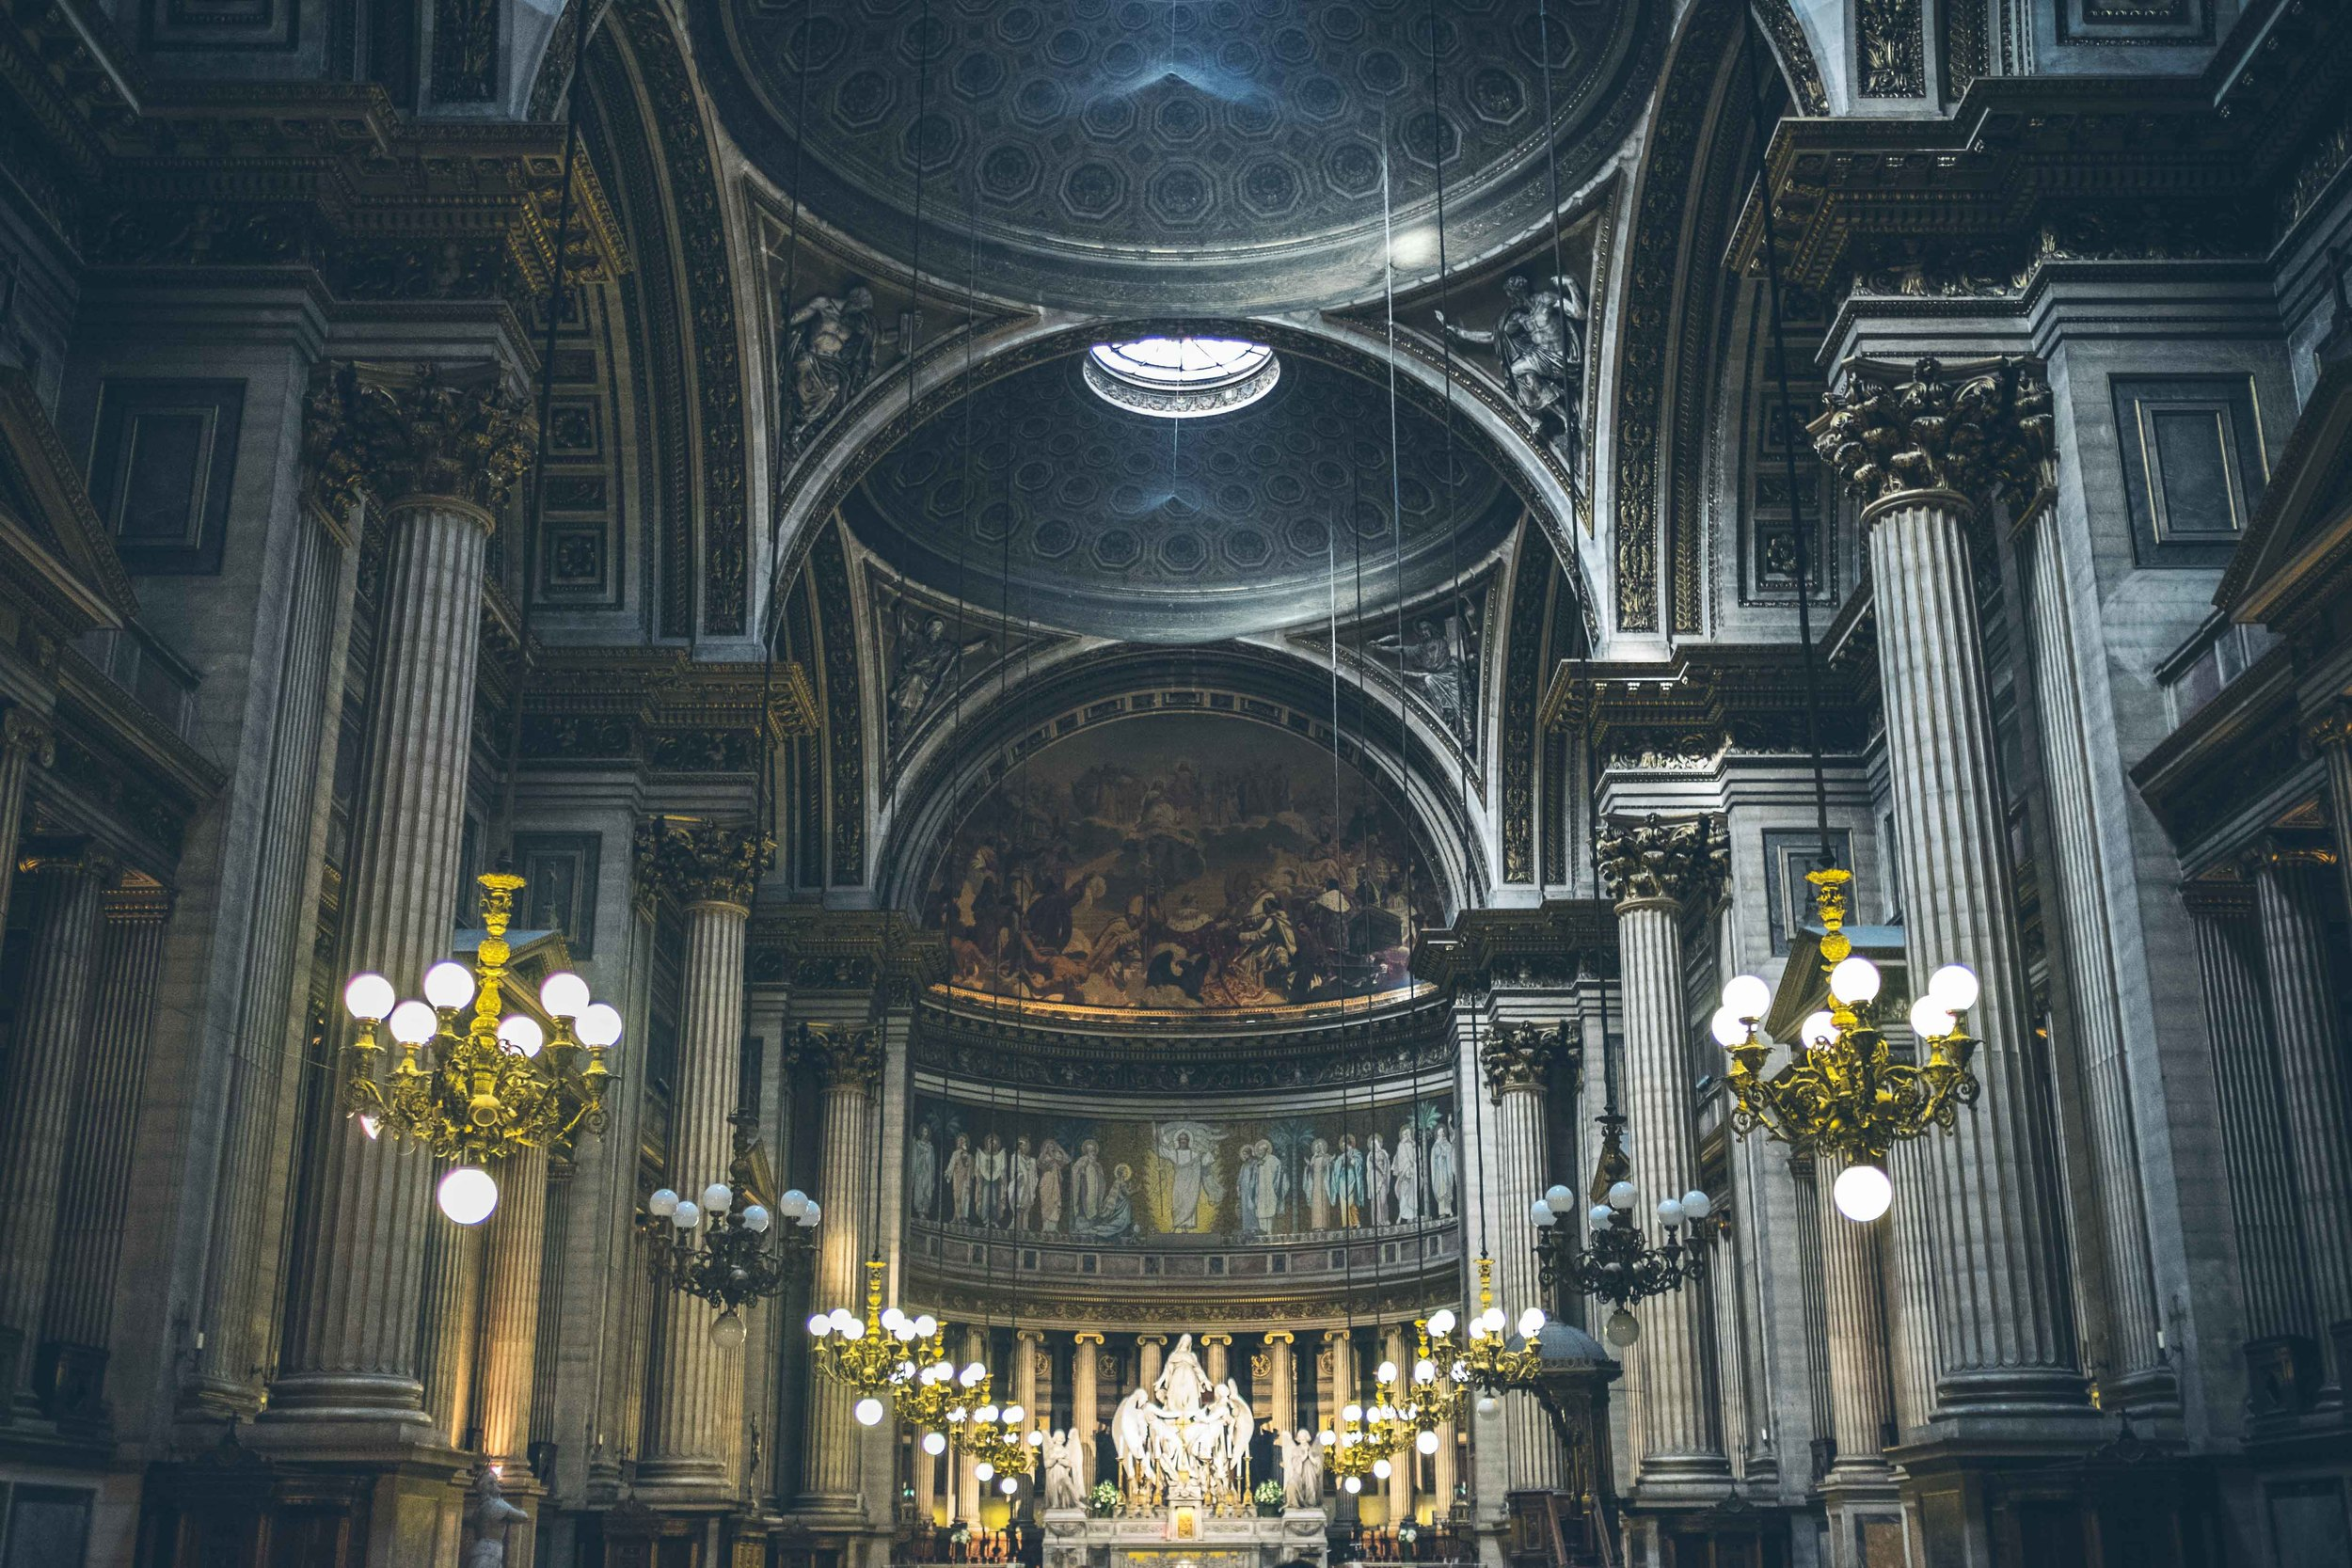 The dramatic interior of La Madeleine, a magnificent church located just next to the Opera House